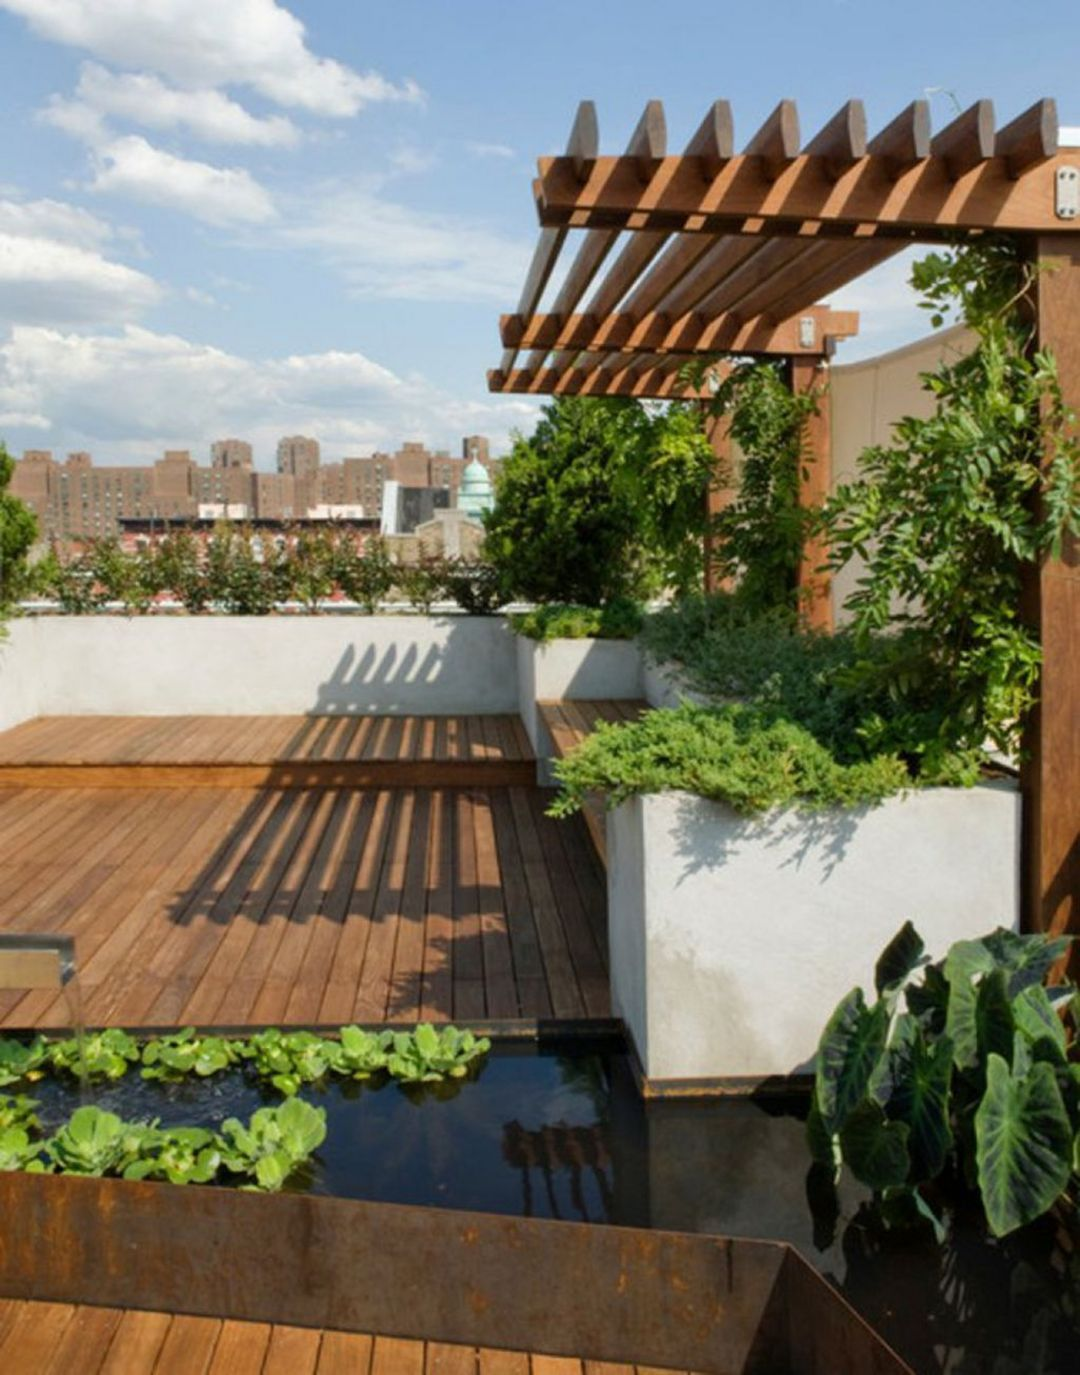 10 Amazing Rooftop Garden Designs For Your Home To Look Awesome Roof Garden Design Roof Terrace Design Outdoor Patio Designs